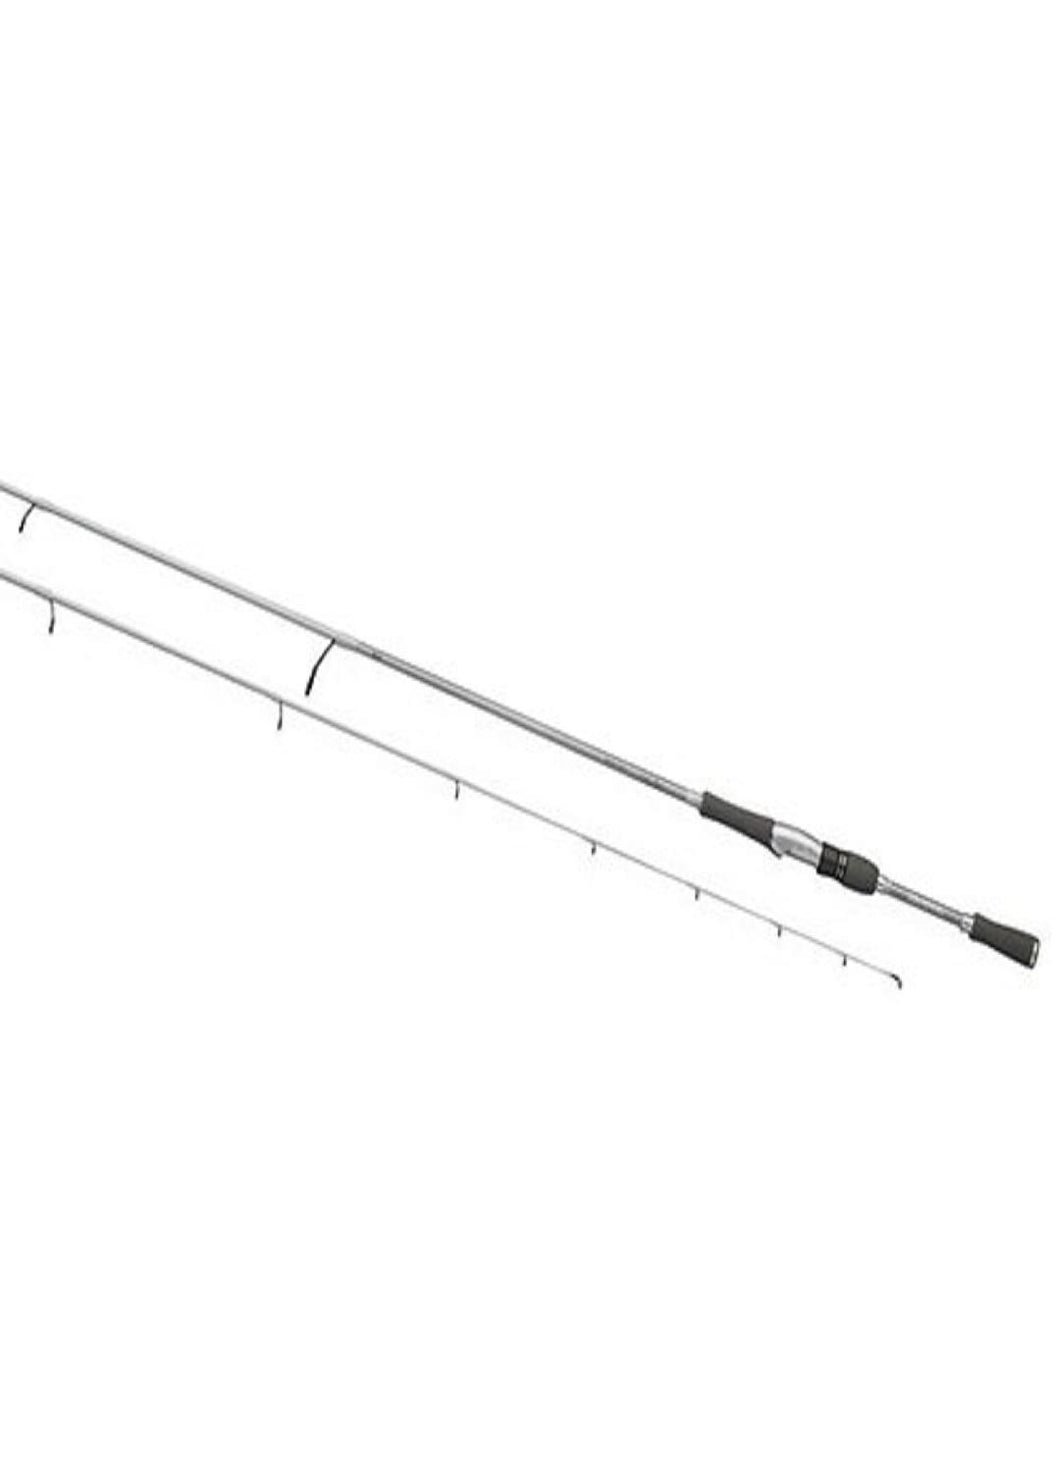 Daiwa Tatula Elite Rod 7'1